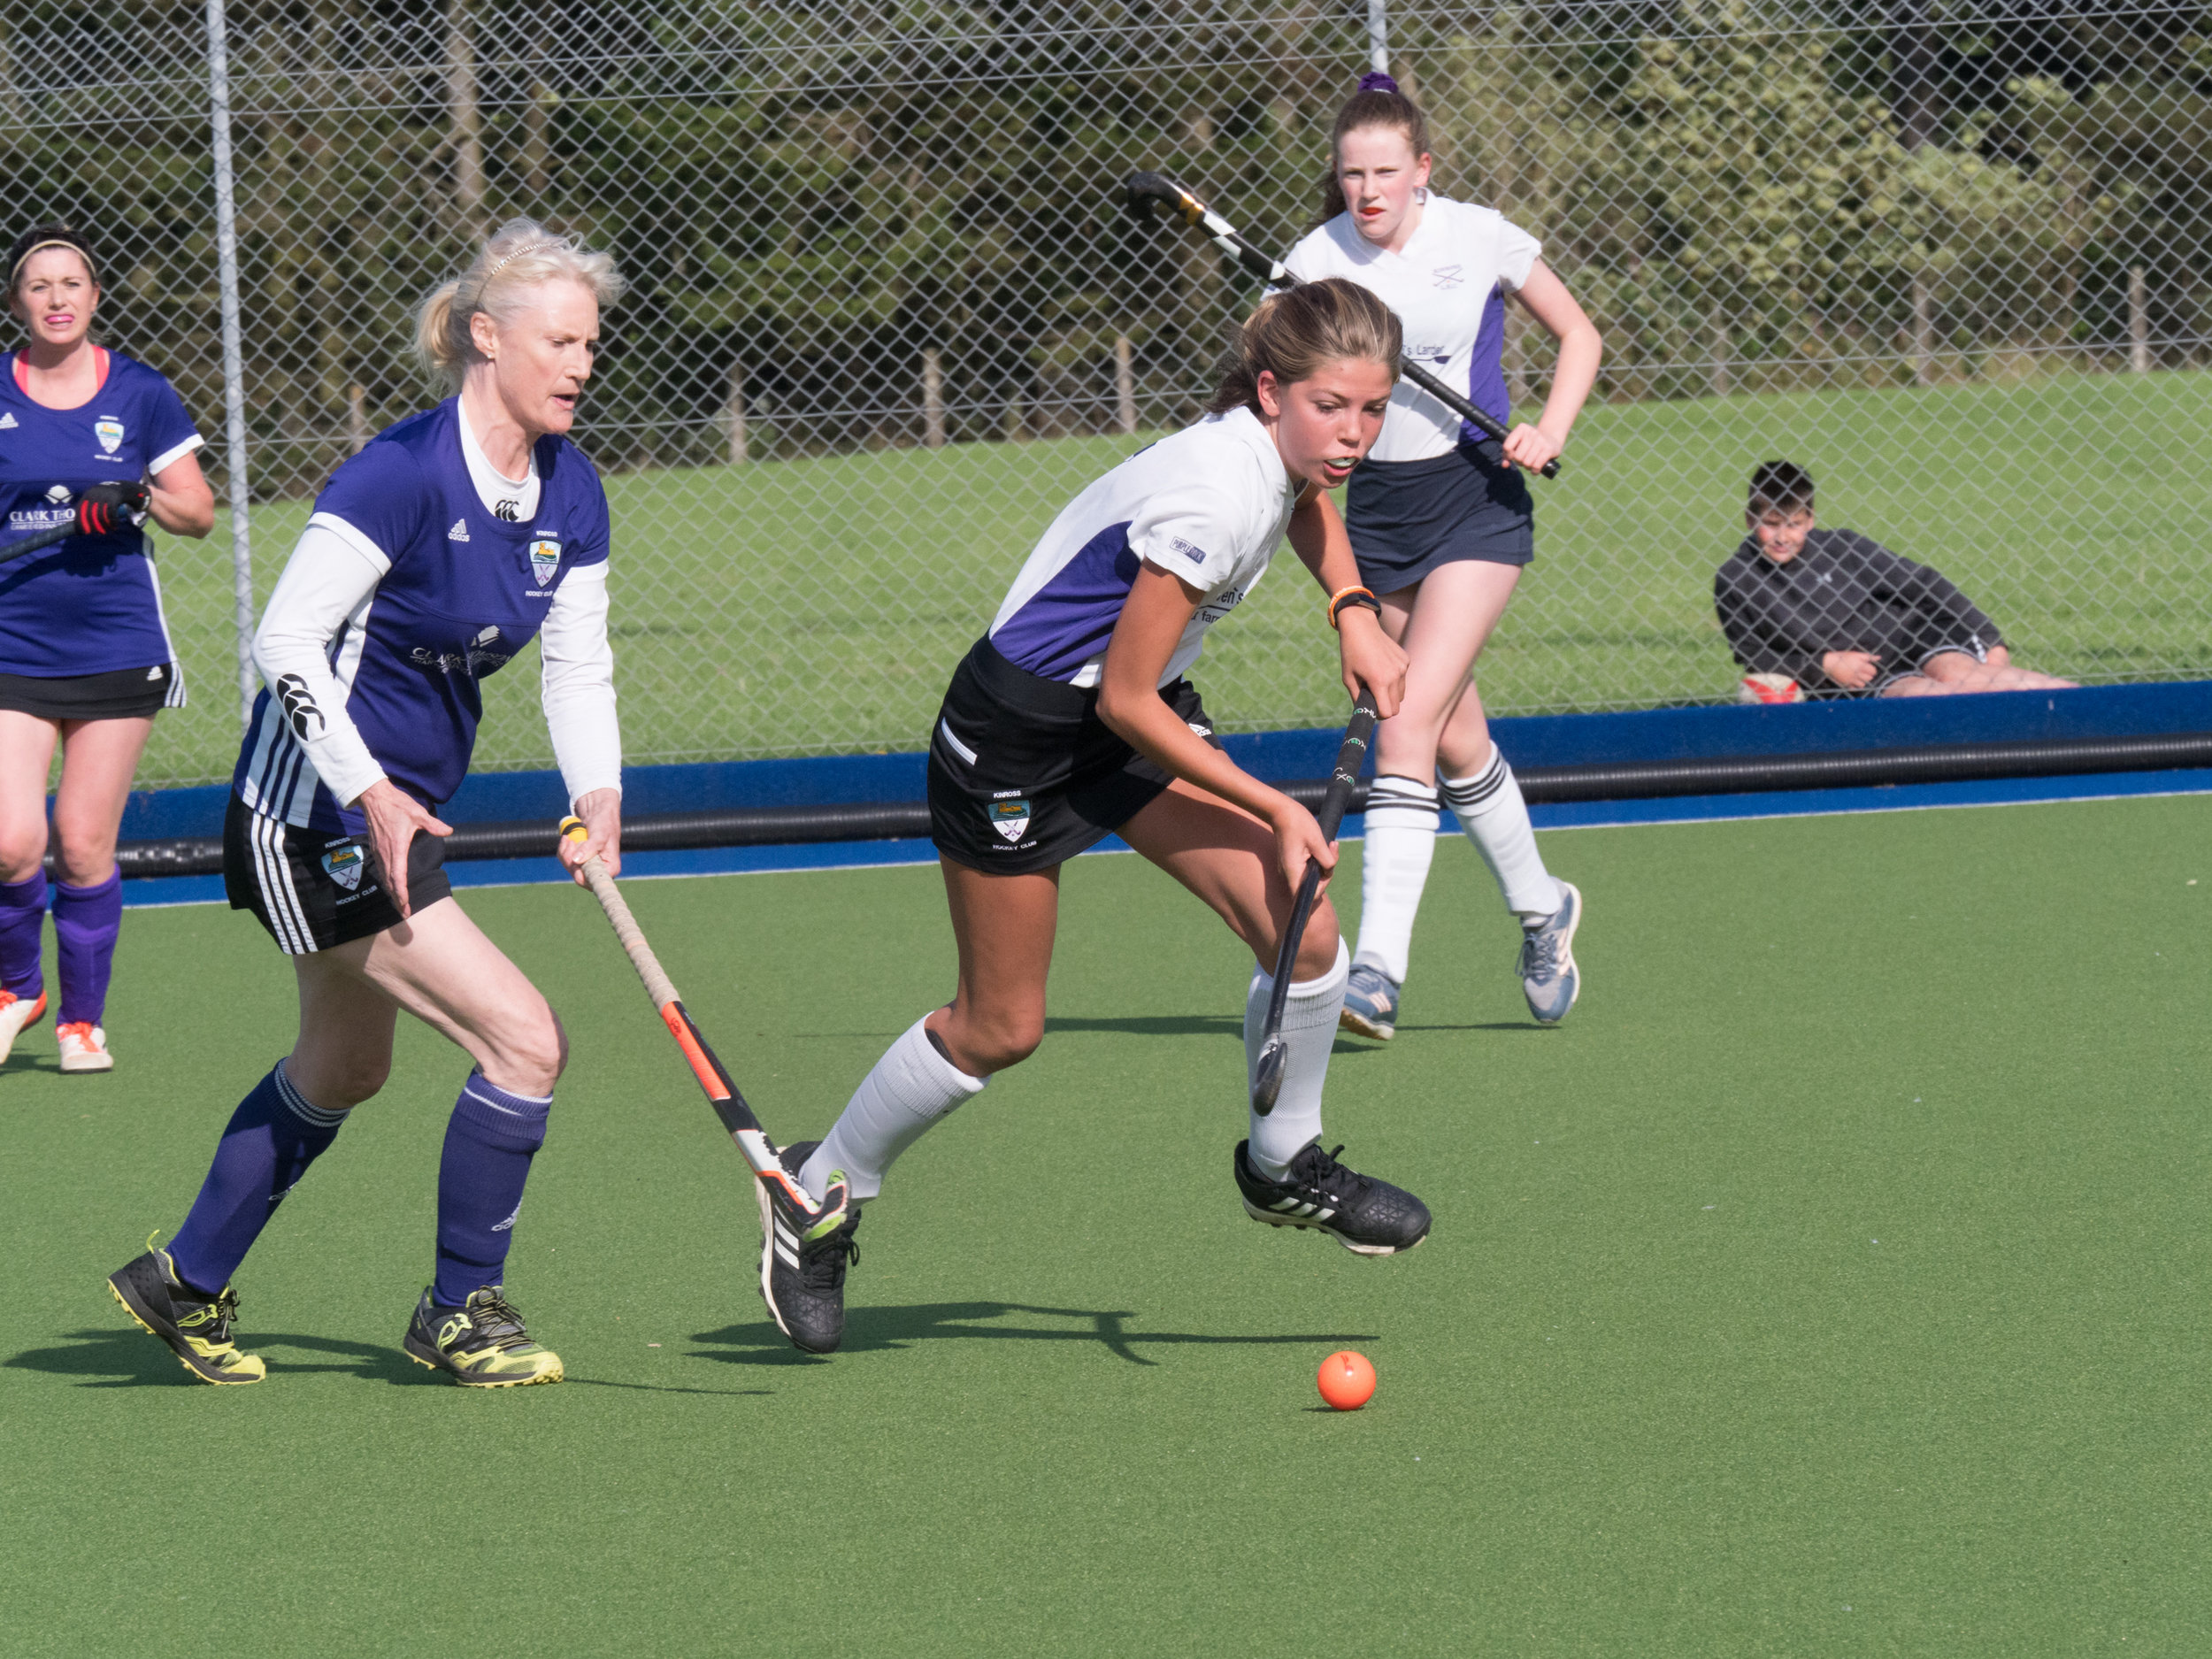 Ladies 3s vs 2s Aug 31st 2019-16.jpg